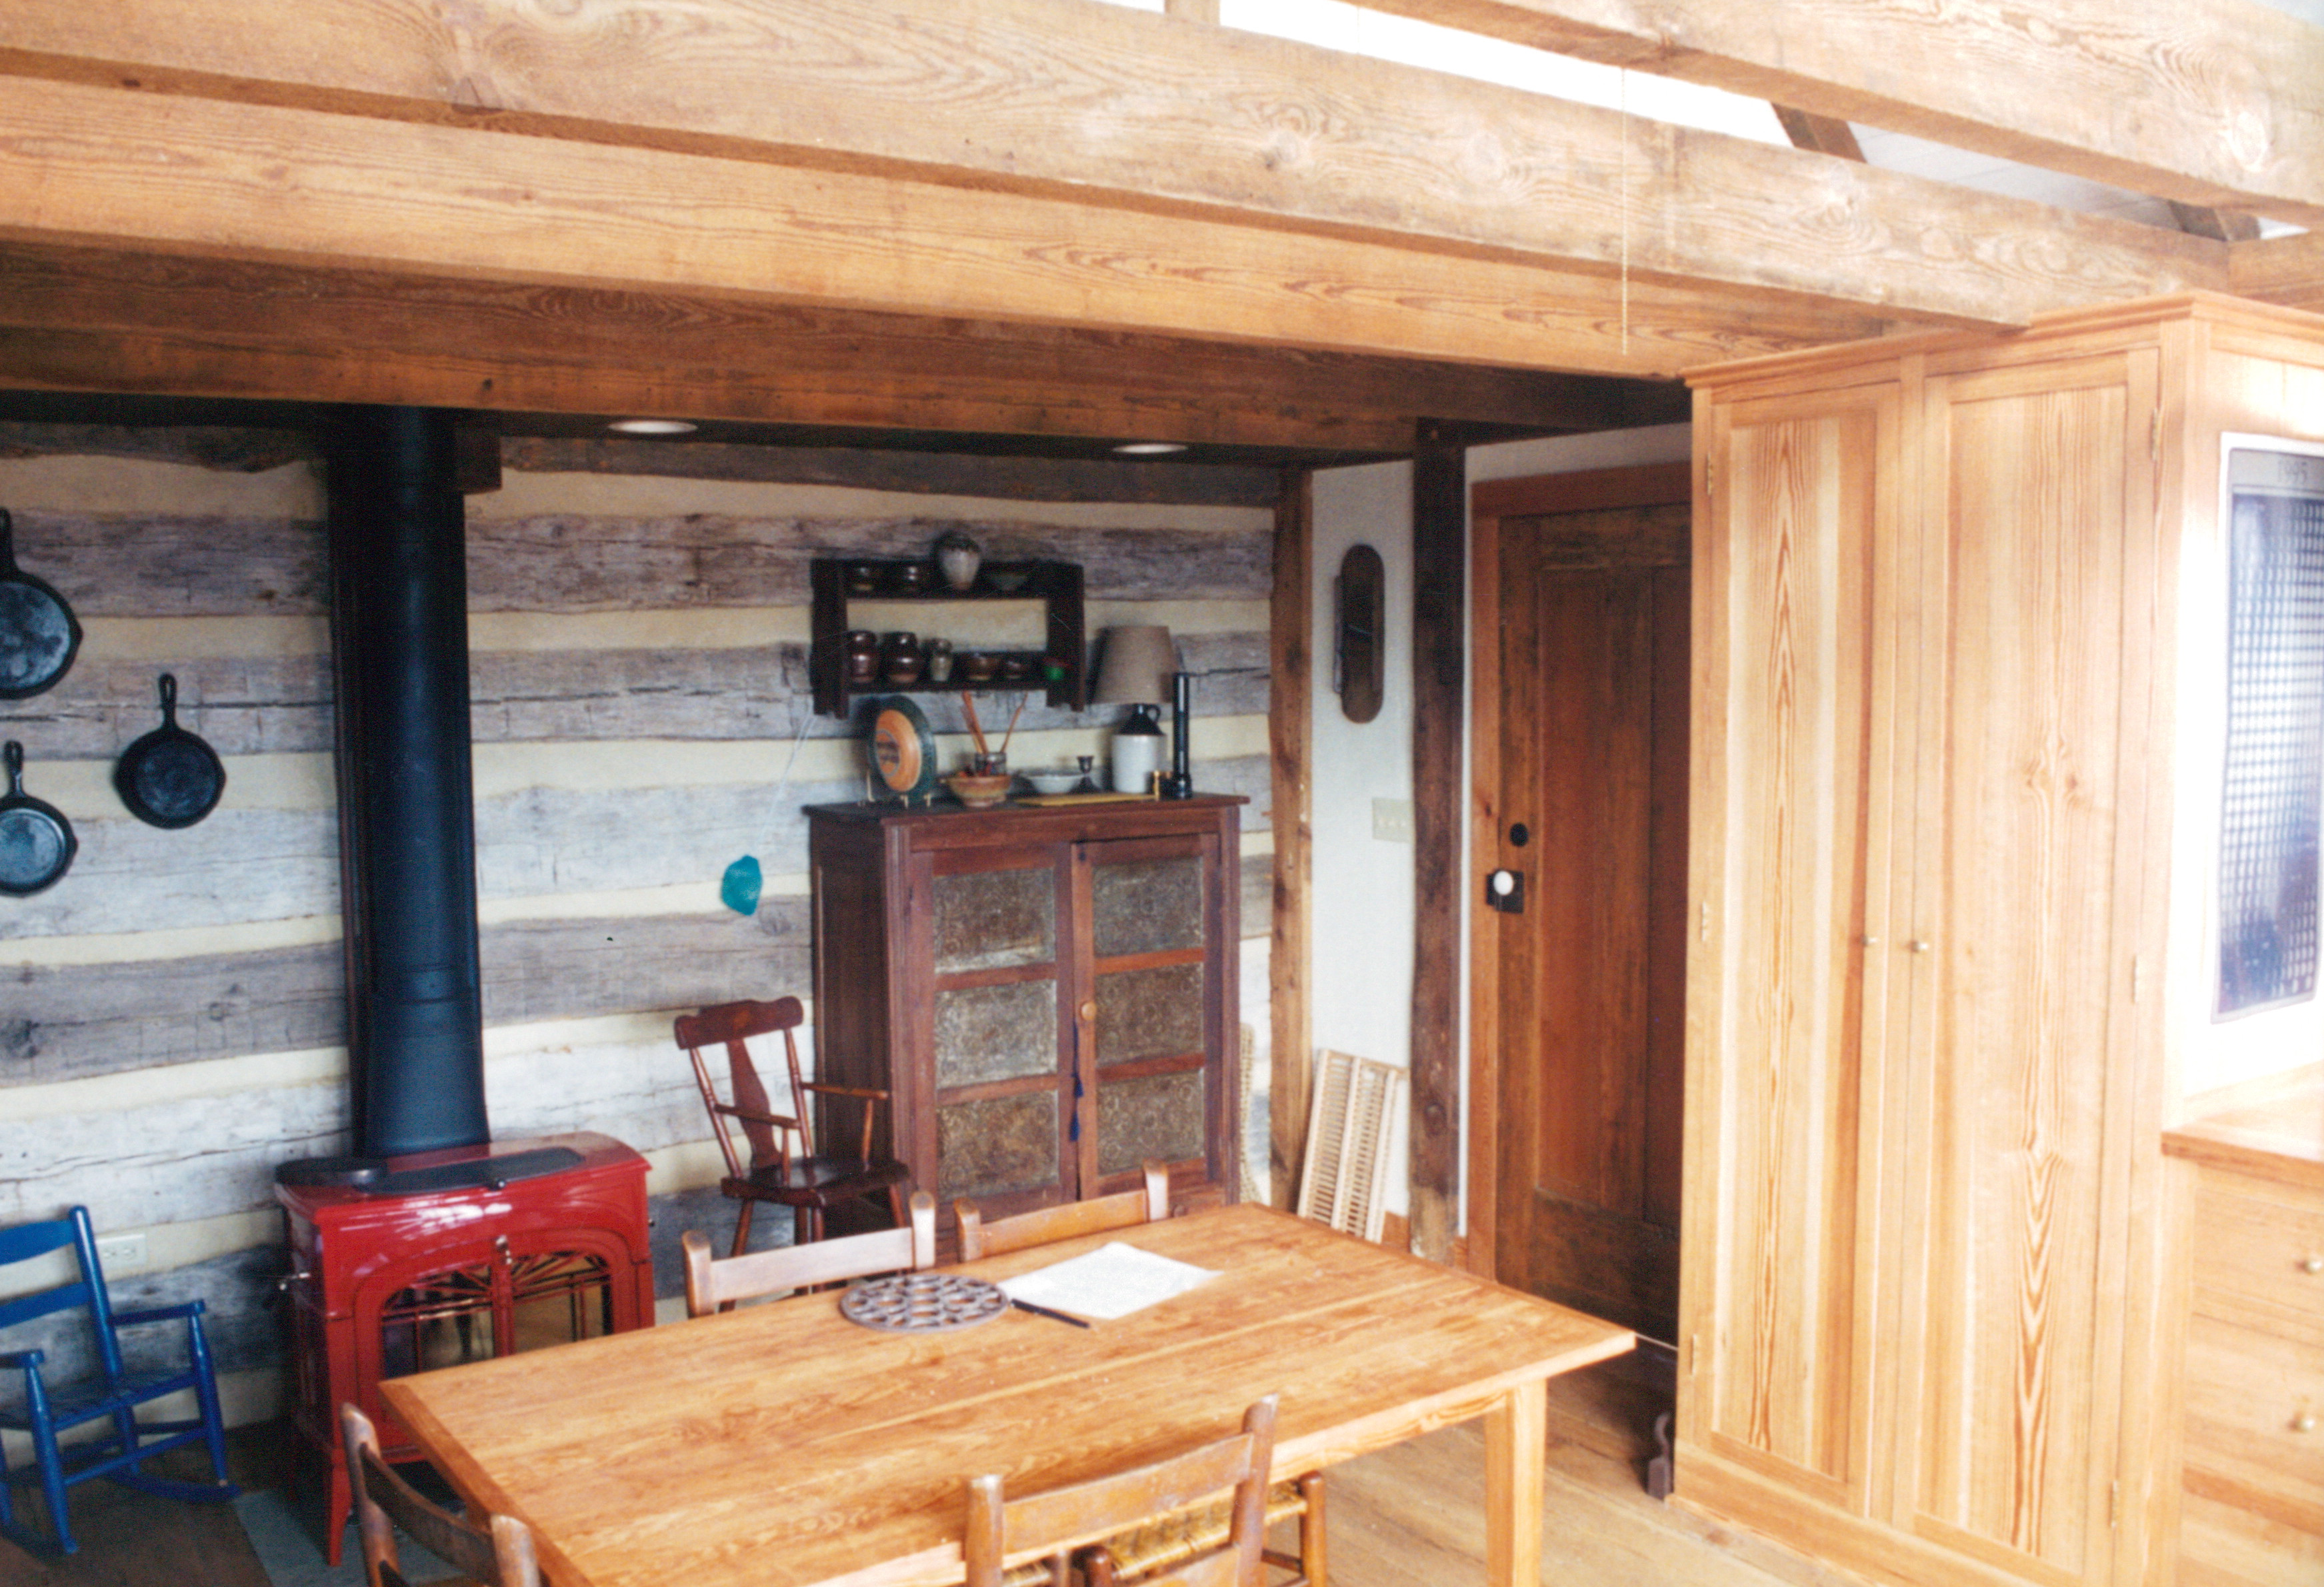 Finished interior where timber frame meets log cabin